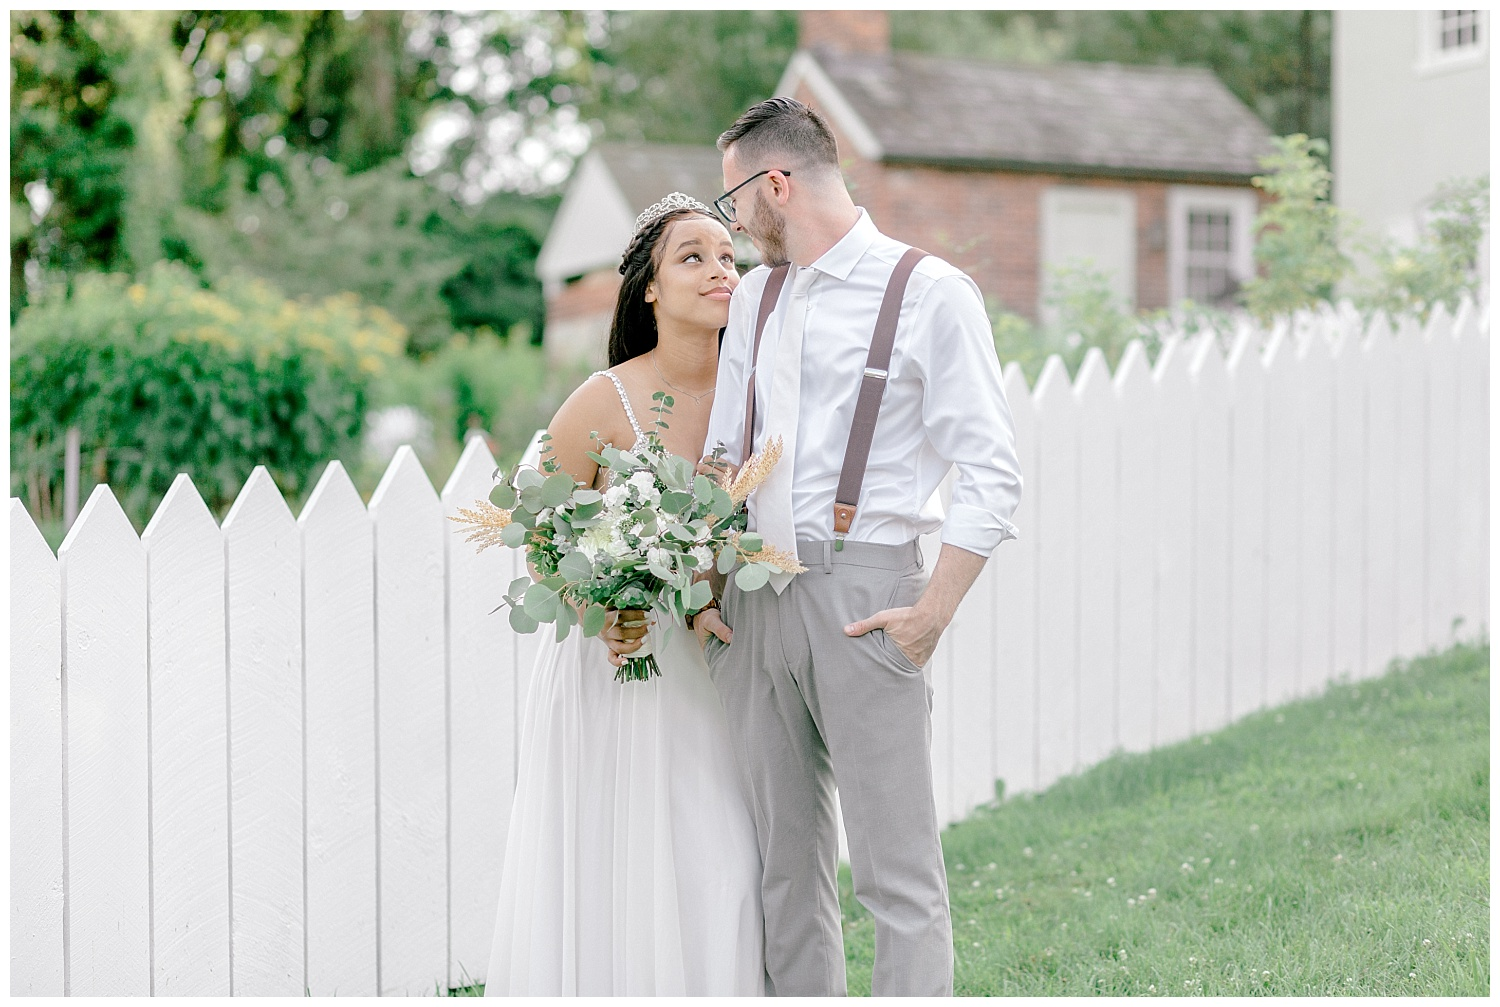 Olive green and white rustic barn wedding at burnside plantation in bethlehem pennsylvania by PA based destination wedding and lifestyle photographer Lytle photography (75).jpg